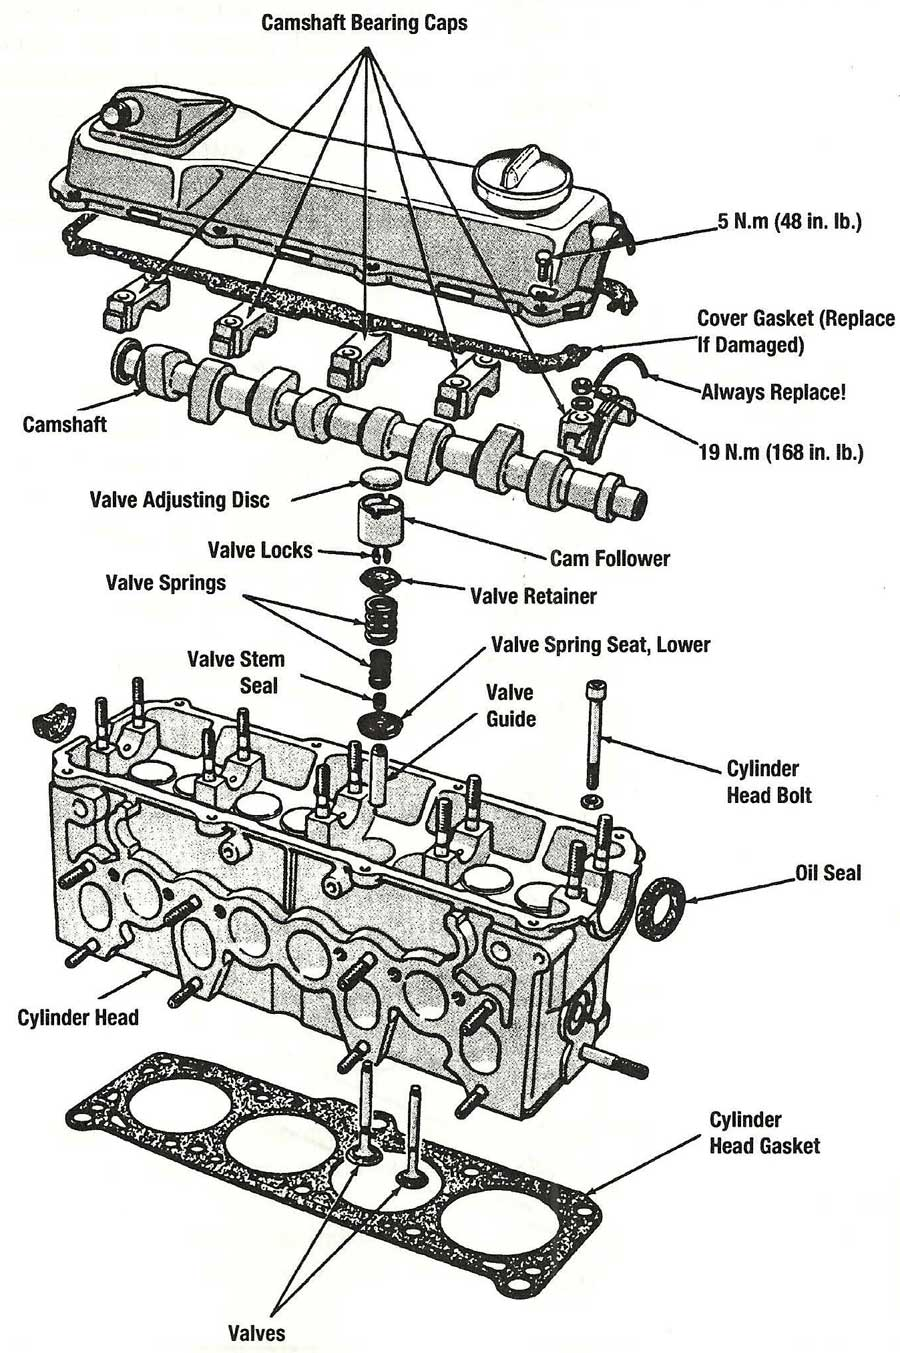 Engine Operation